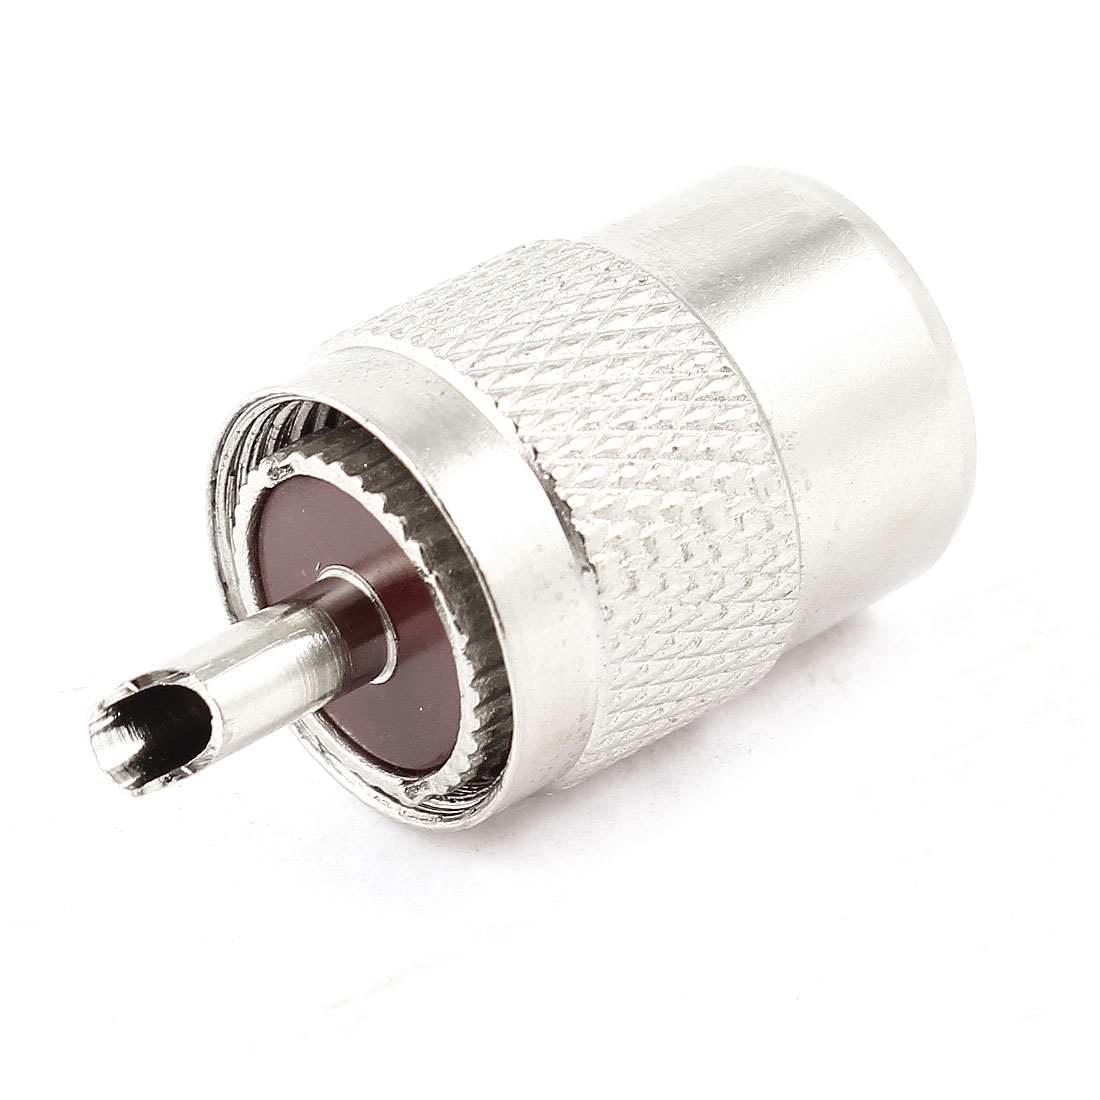 Nickel Plated PL259 Male Solder Type UHF Radio Connector